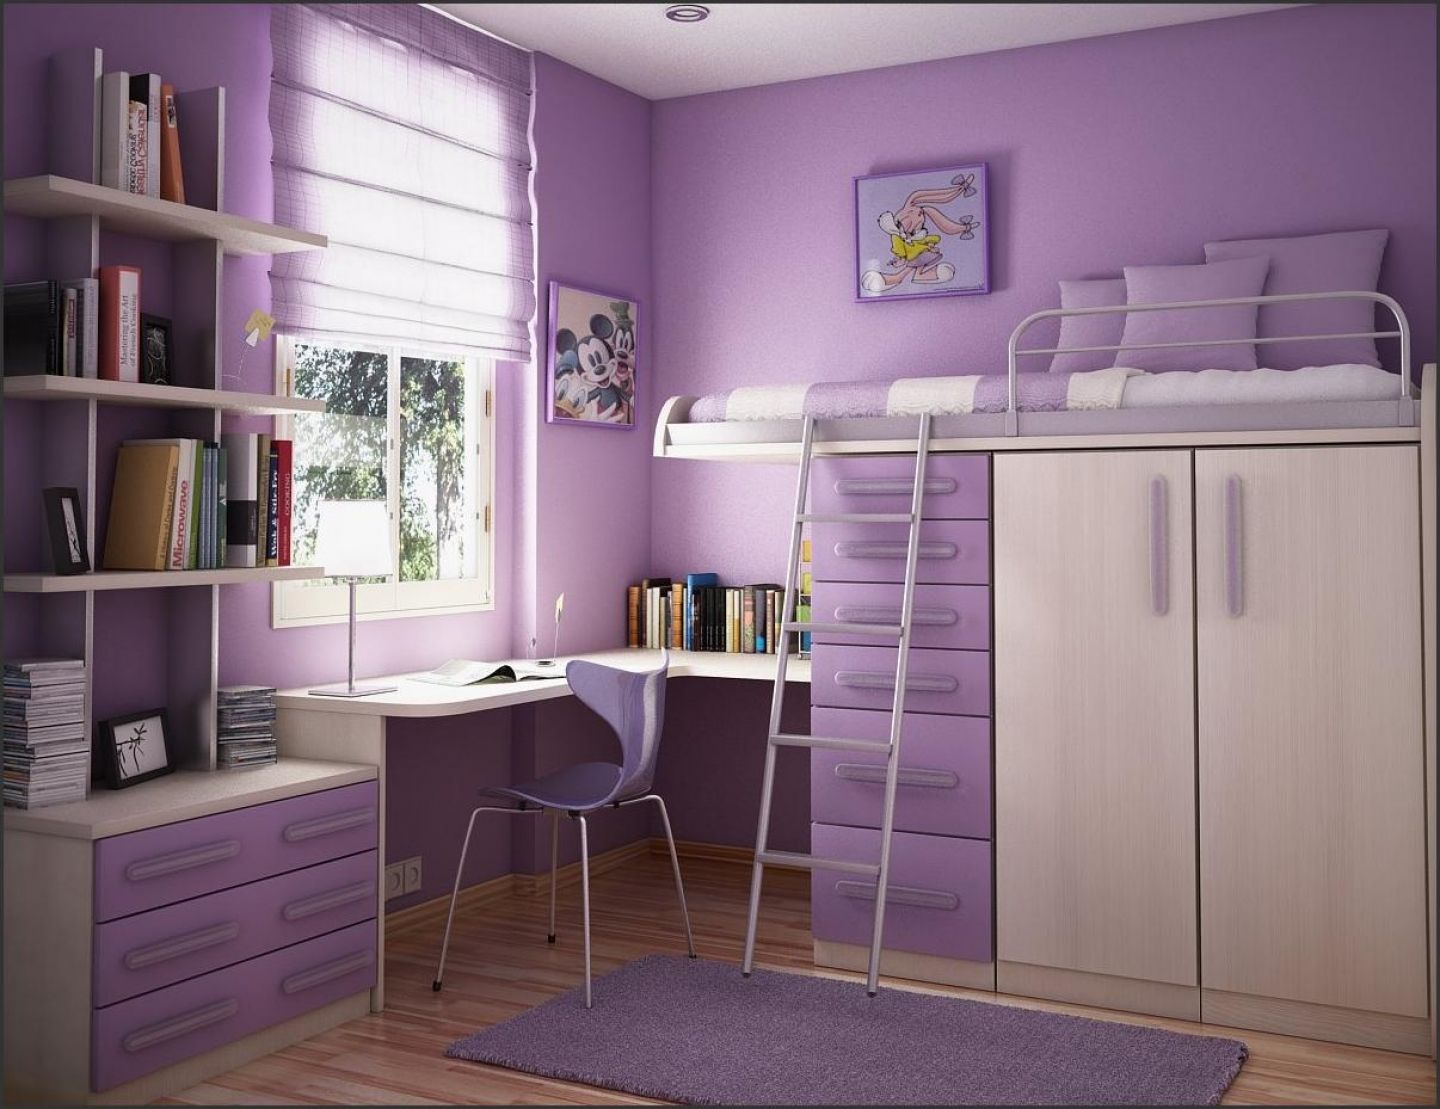 Cool Girls Bedroom teen girl bedroom decorating ideas |  -06-13 14:03:58 bedroom